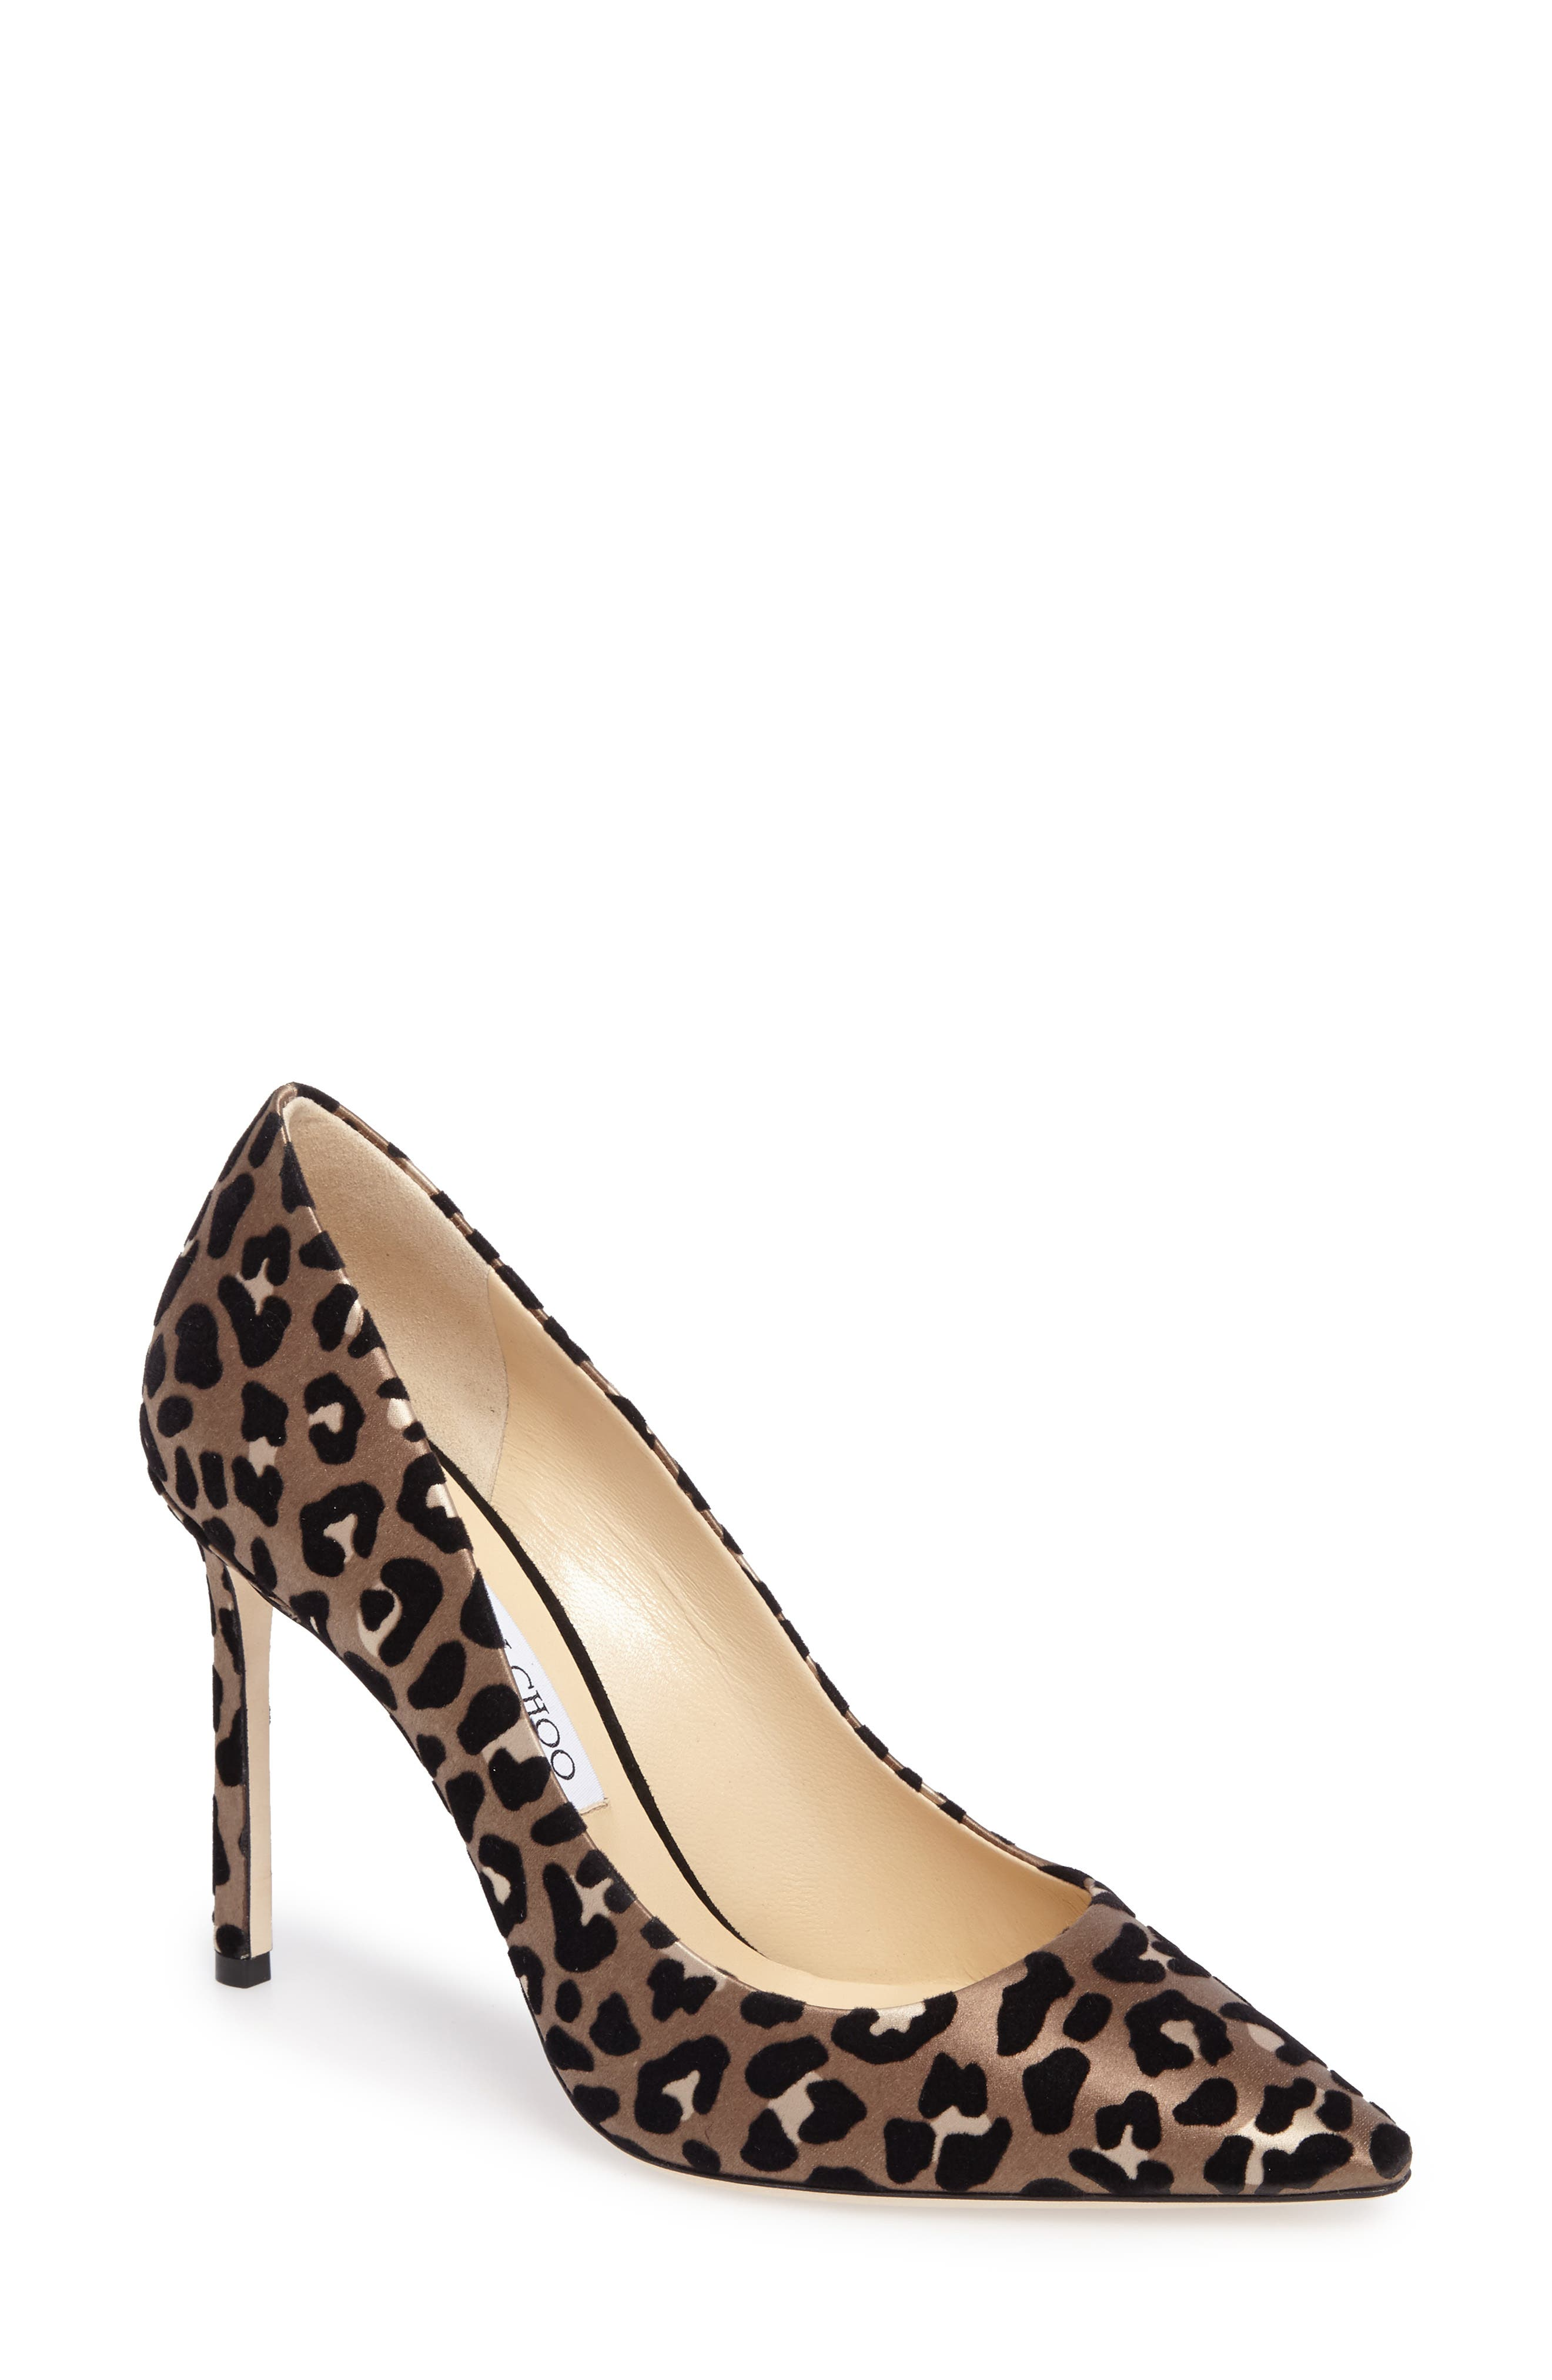 Main Image - Jimmy Choo Romy Pointy Toe Pump (Women)